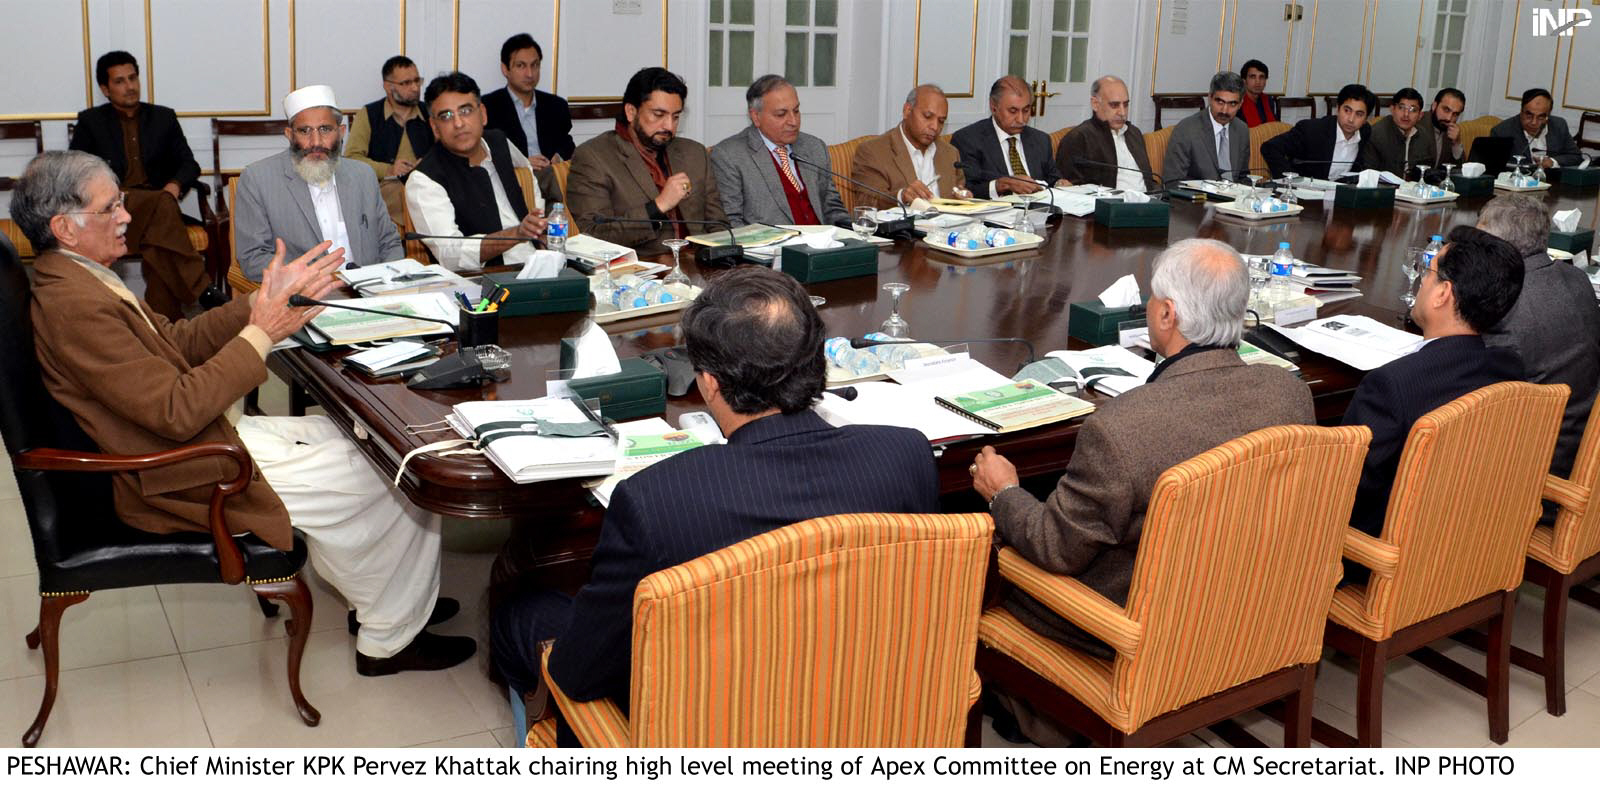 khyber pakhtunkhwa chief minister pervez khattak along with senior members of k p government and pti during the apex committee photo inp